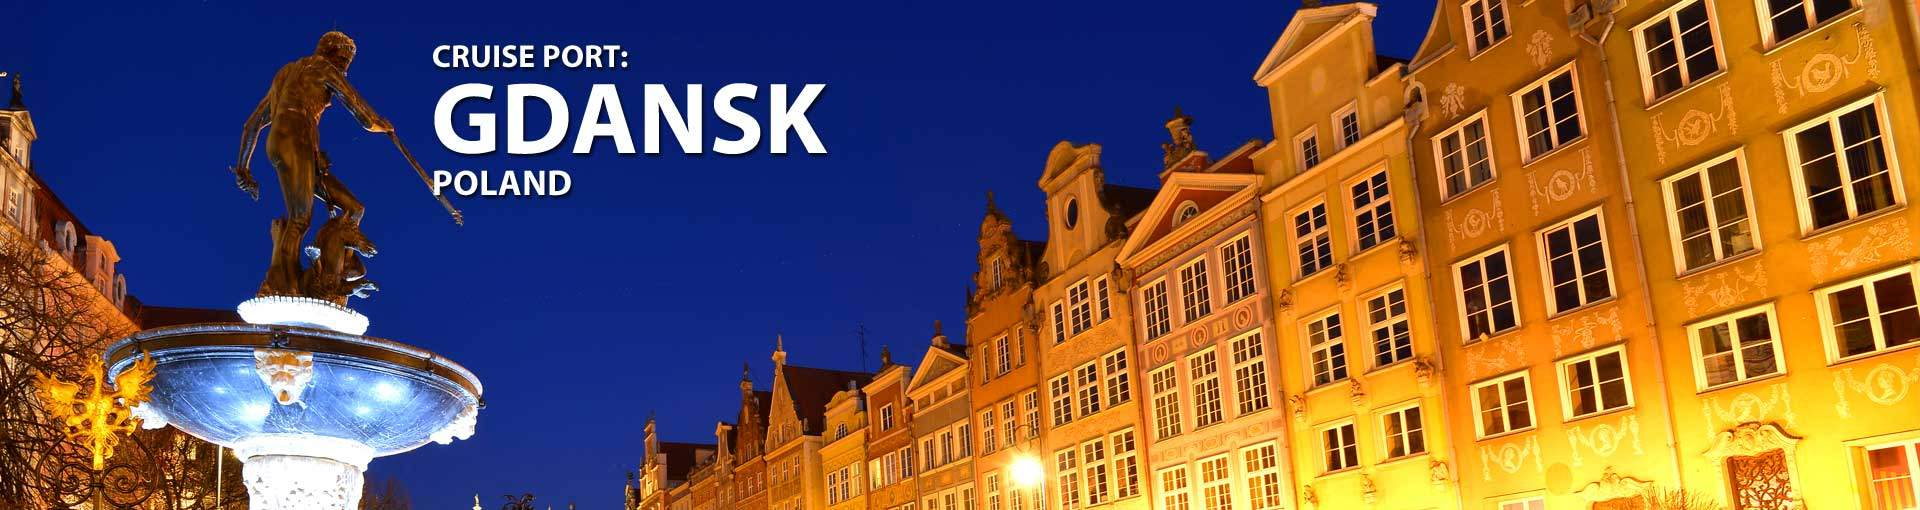 Cruises to Gdansk, Poland